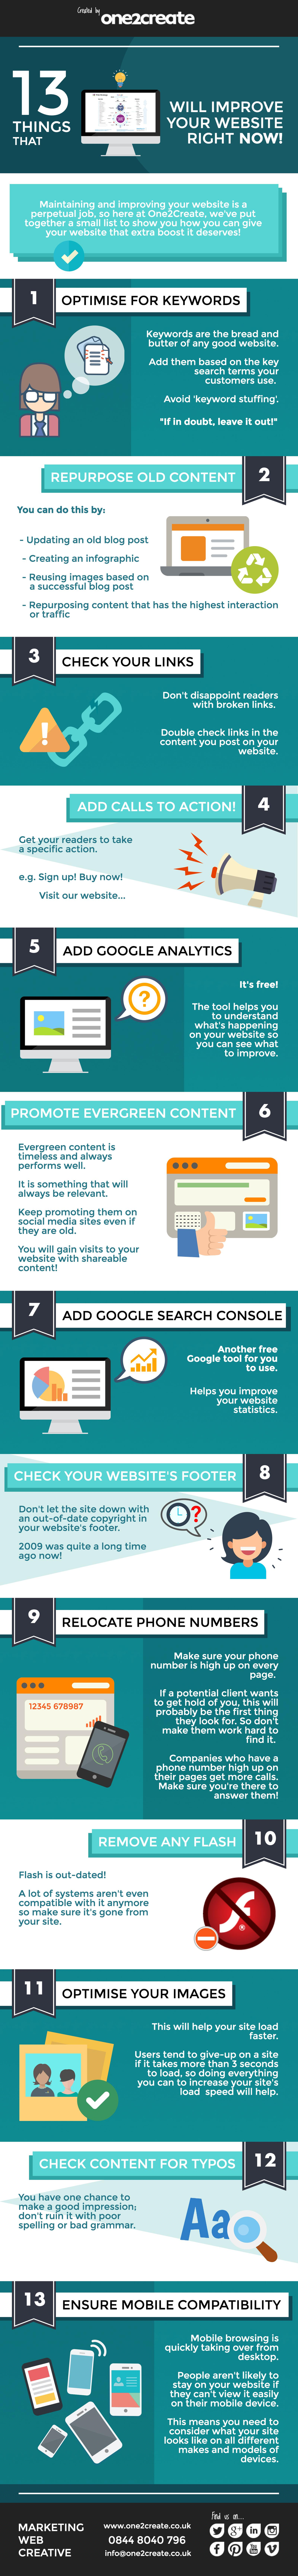 13 things to improve your website - 13 Ways to Improve your Website Infographic